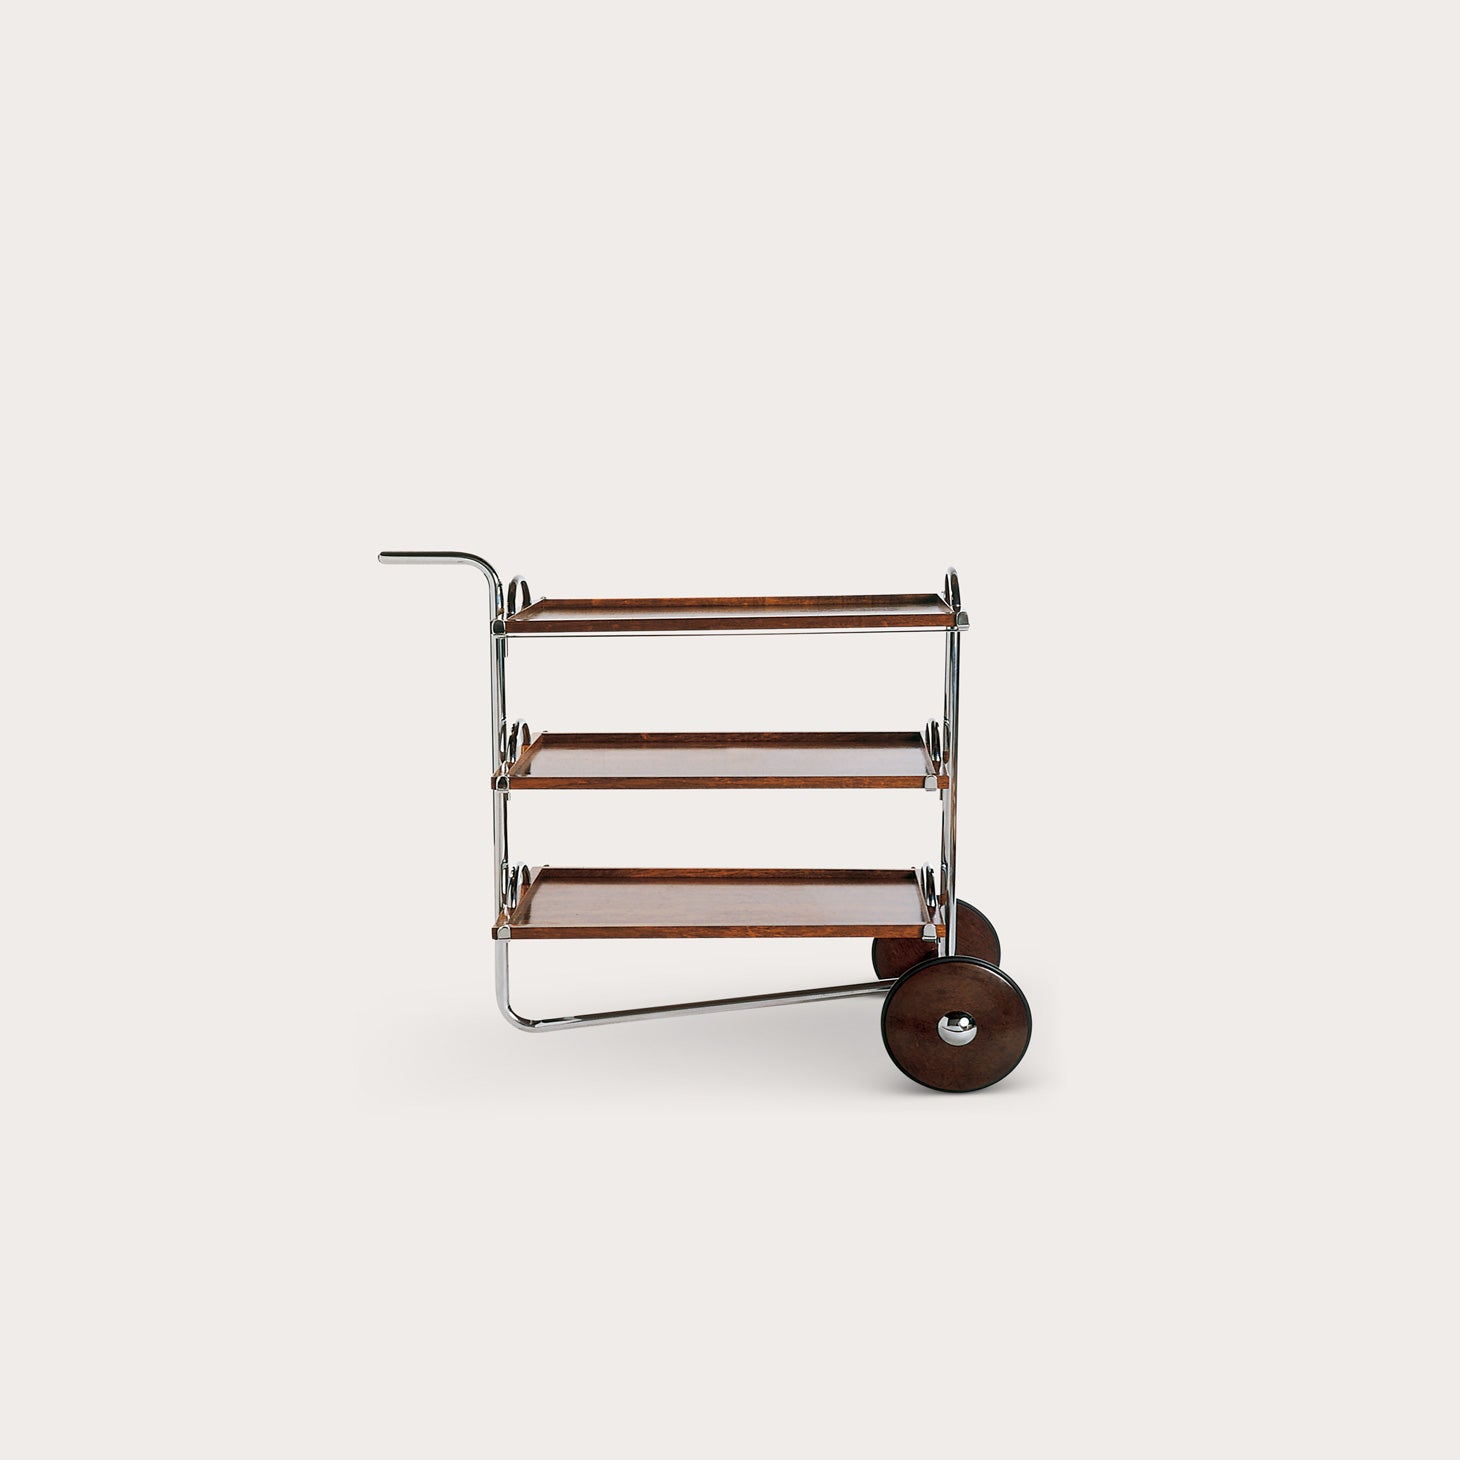 Warchavchik Tea Trolley Storage Gregori Warchavchik Designer Furniture Sku: 003-220-10097